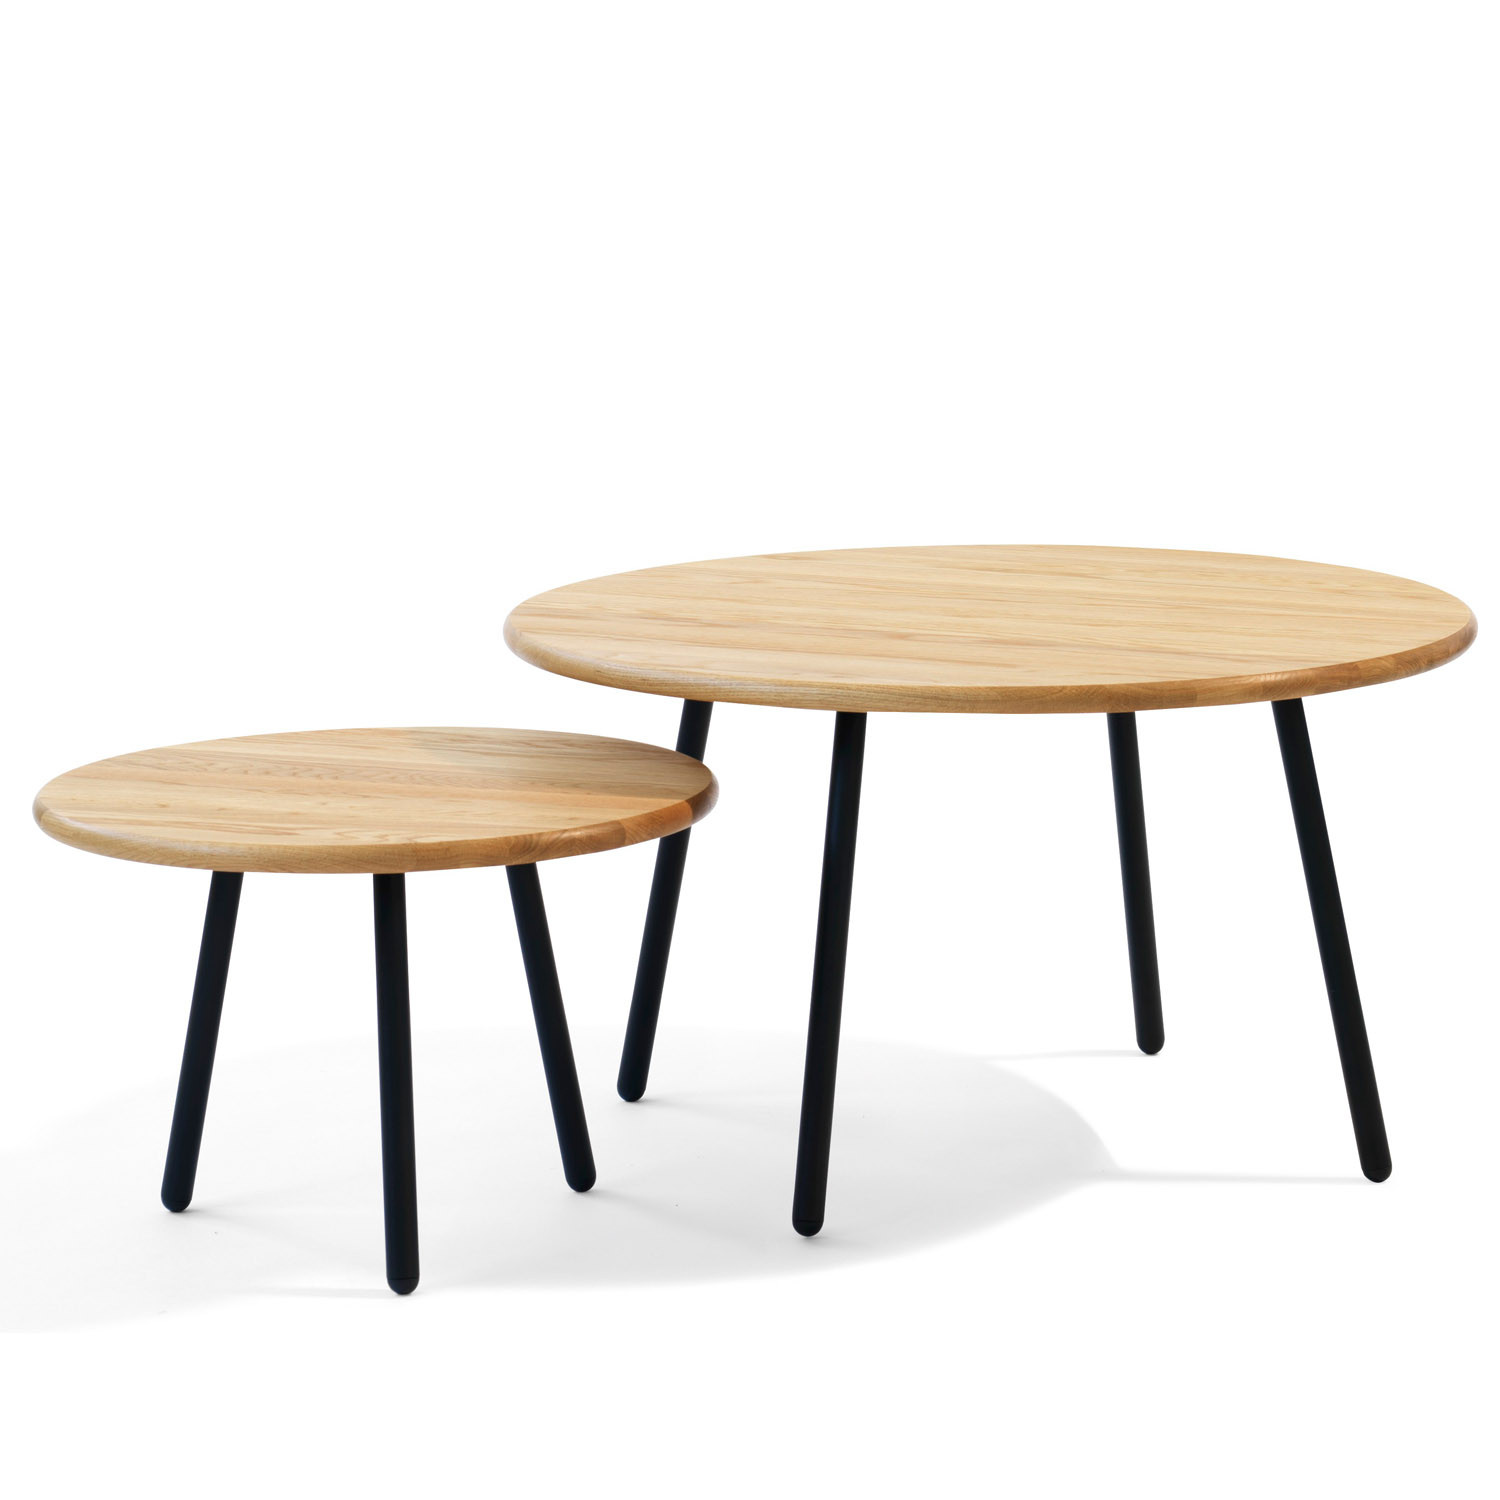 Kaffee Coffee Table and Kaffee Table L11